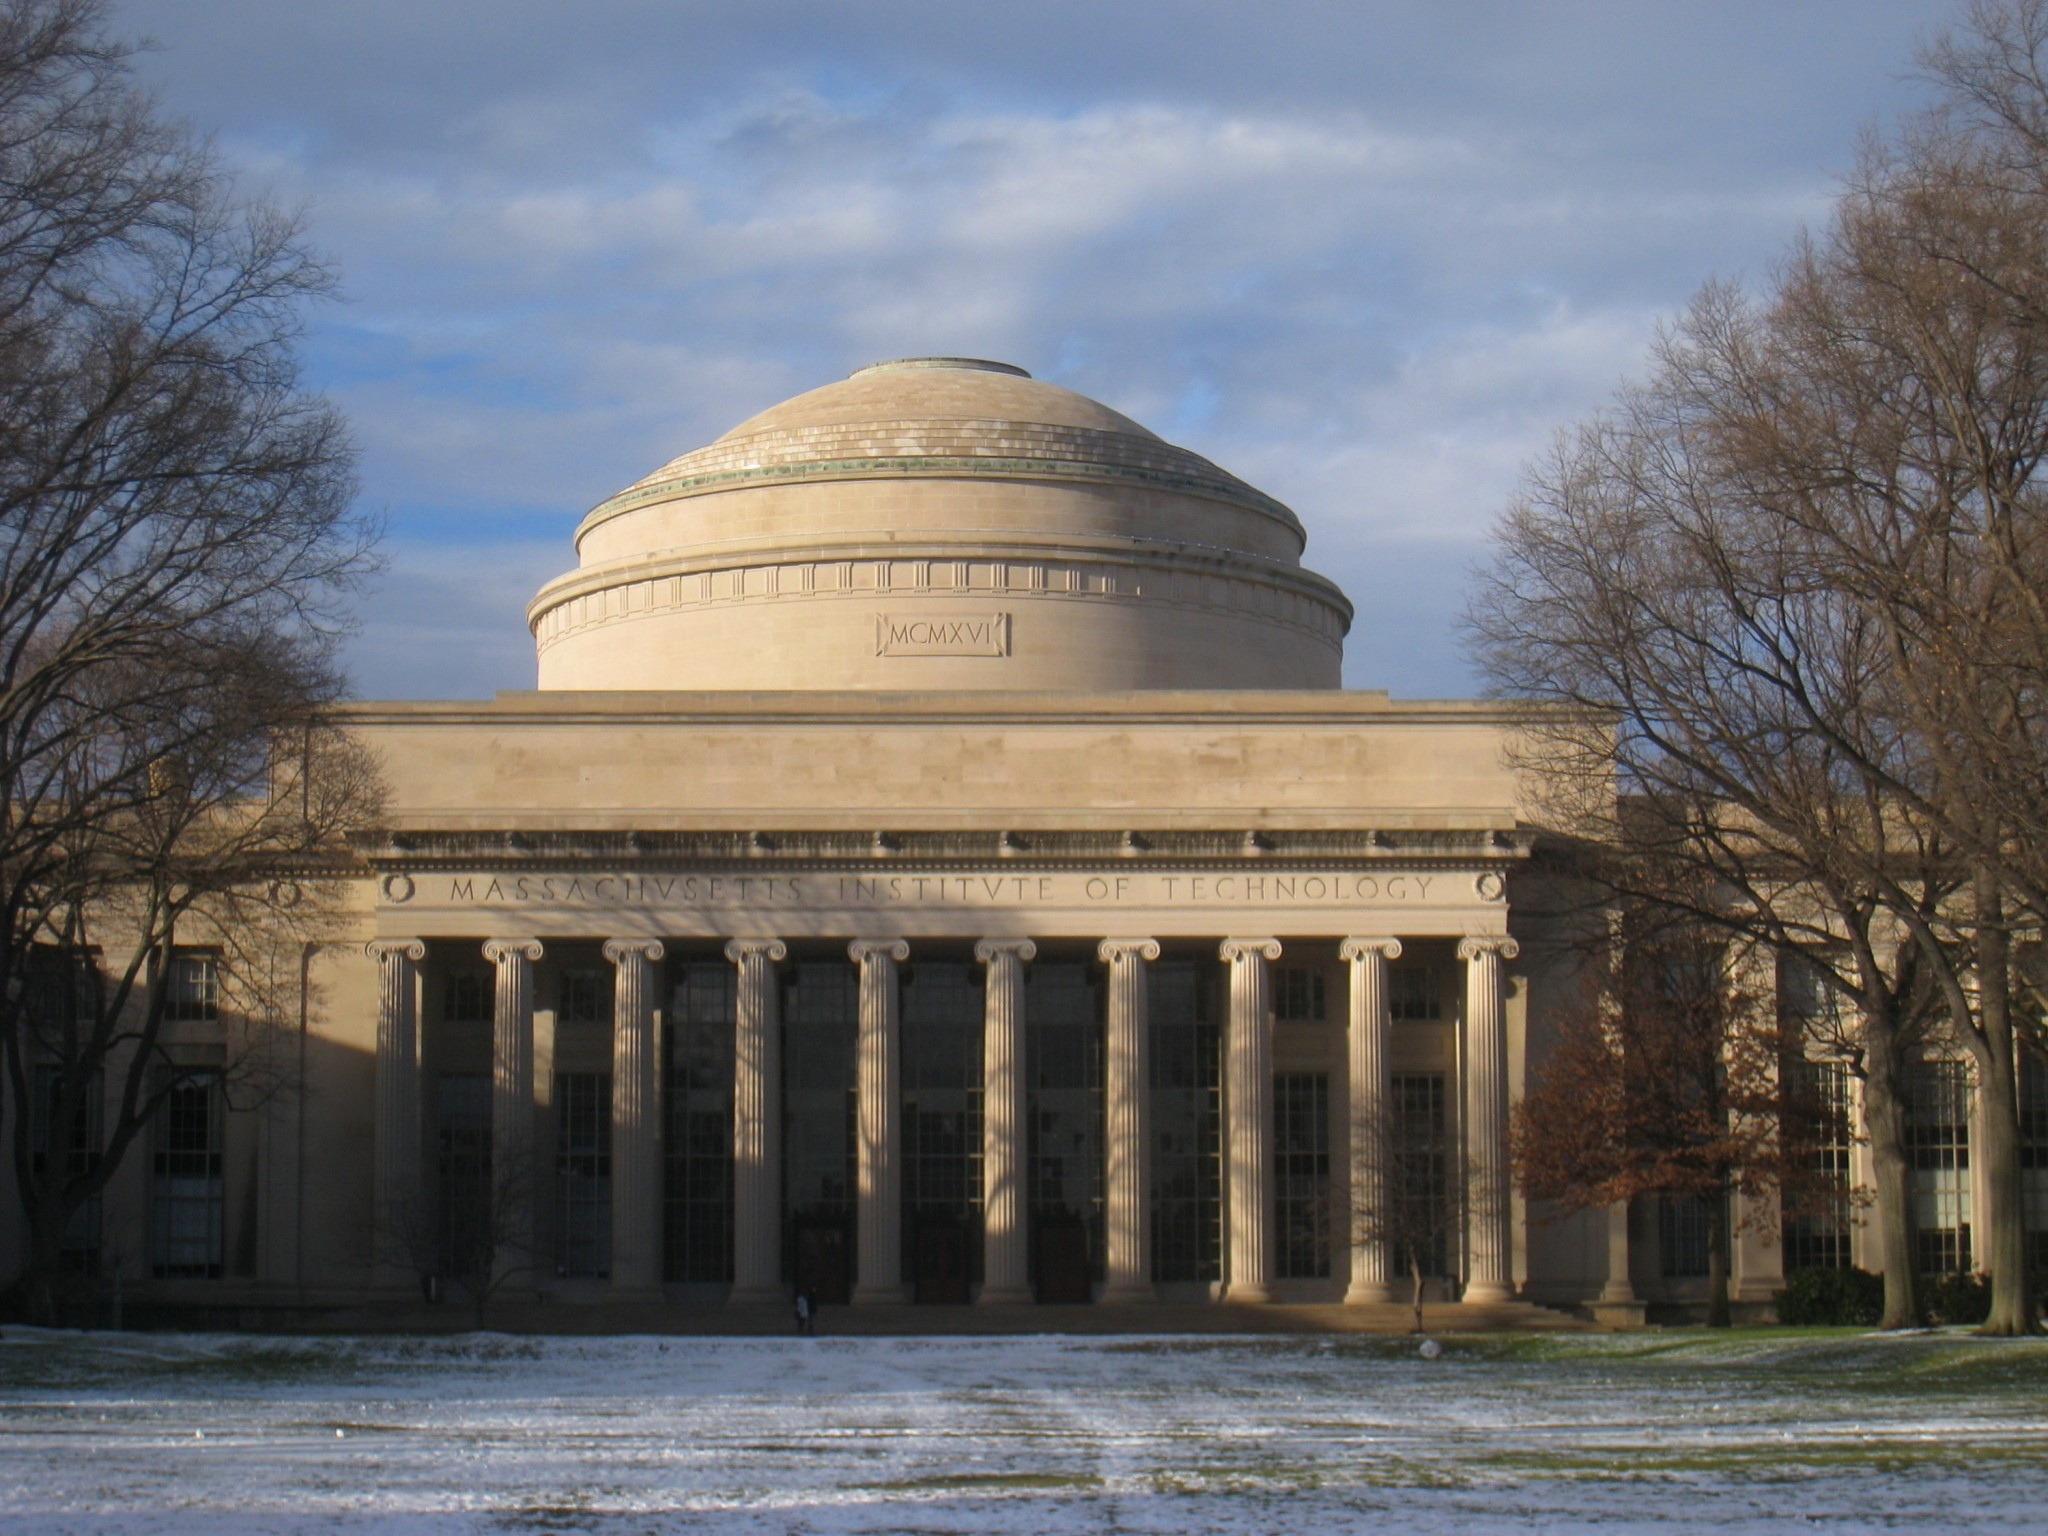 The Massachusetts Institute of Technology, where Youcef-Toumi's robotics career was born. Photo: Public domain.